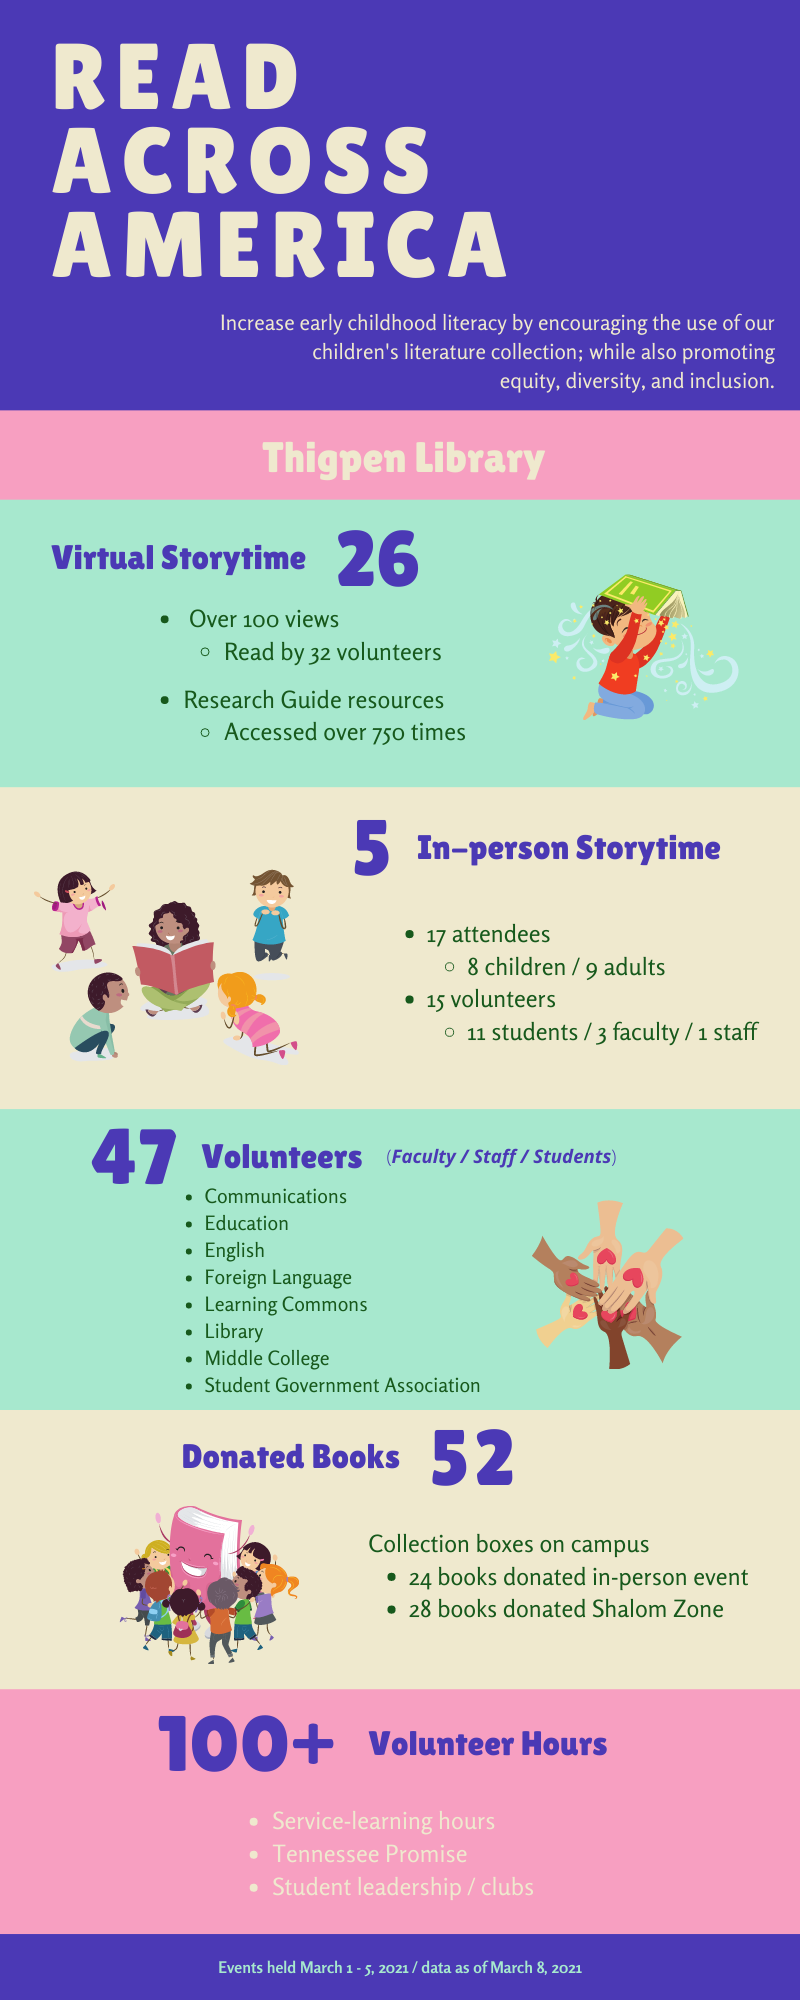 Statistics for Read Across America event